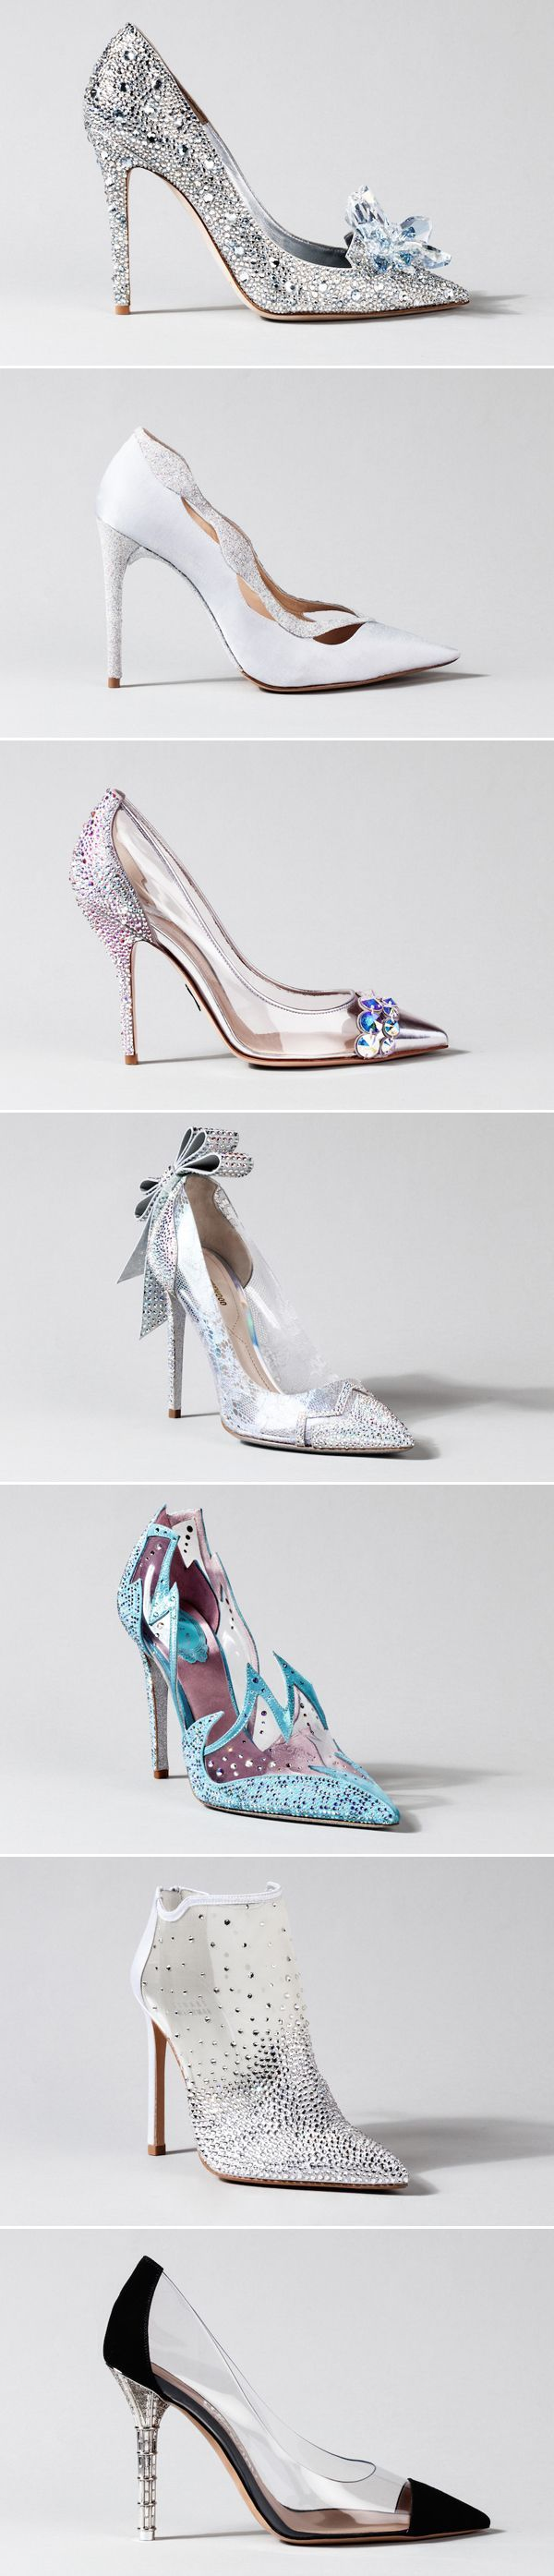 inderella-Inspired Wedding Shoes | mysweetengagement.com